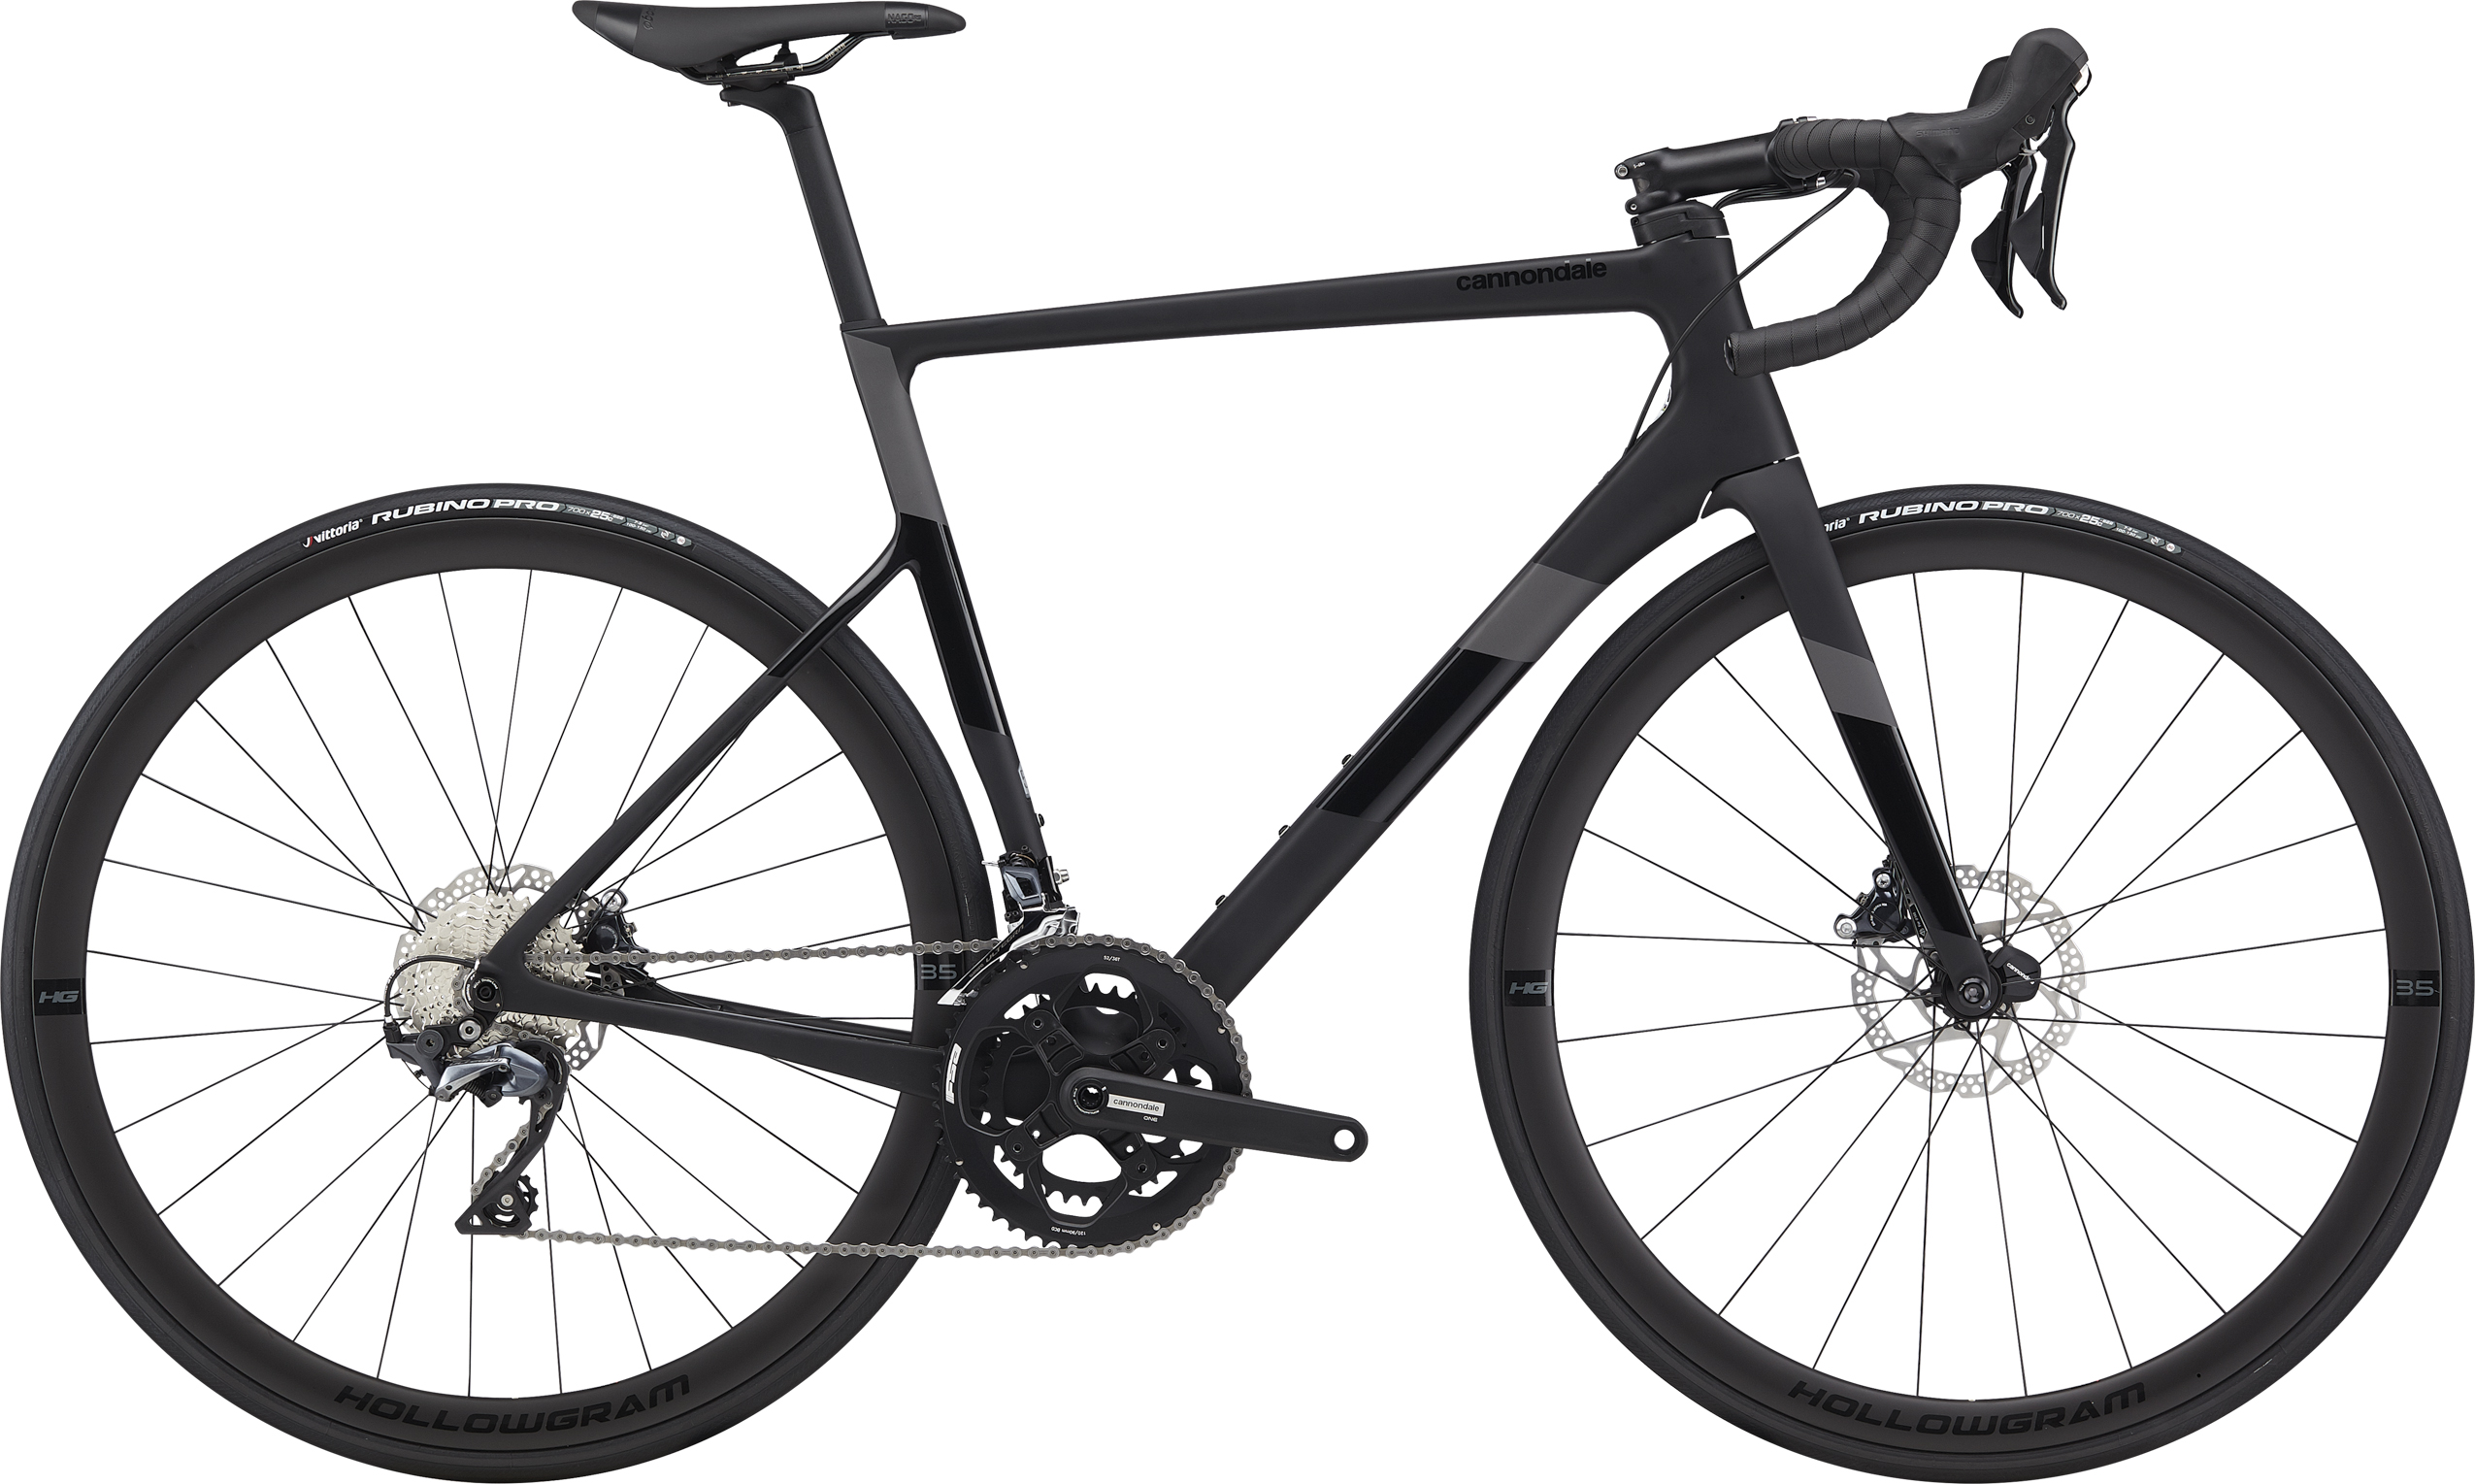 2020 Cannondale SuperSix EVO Carbon DISC ULTEGRA Road Bike : Mat Black